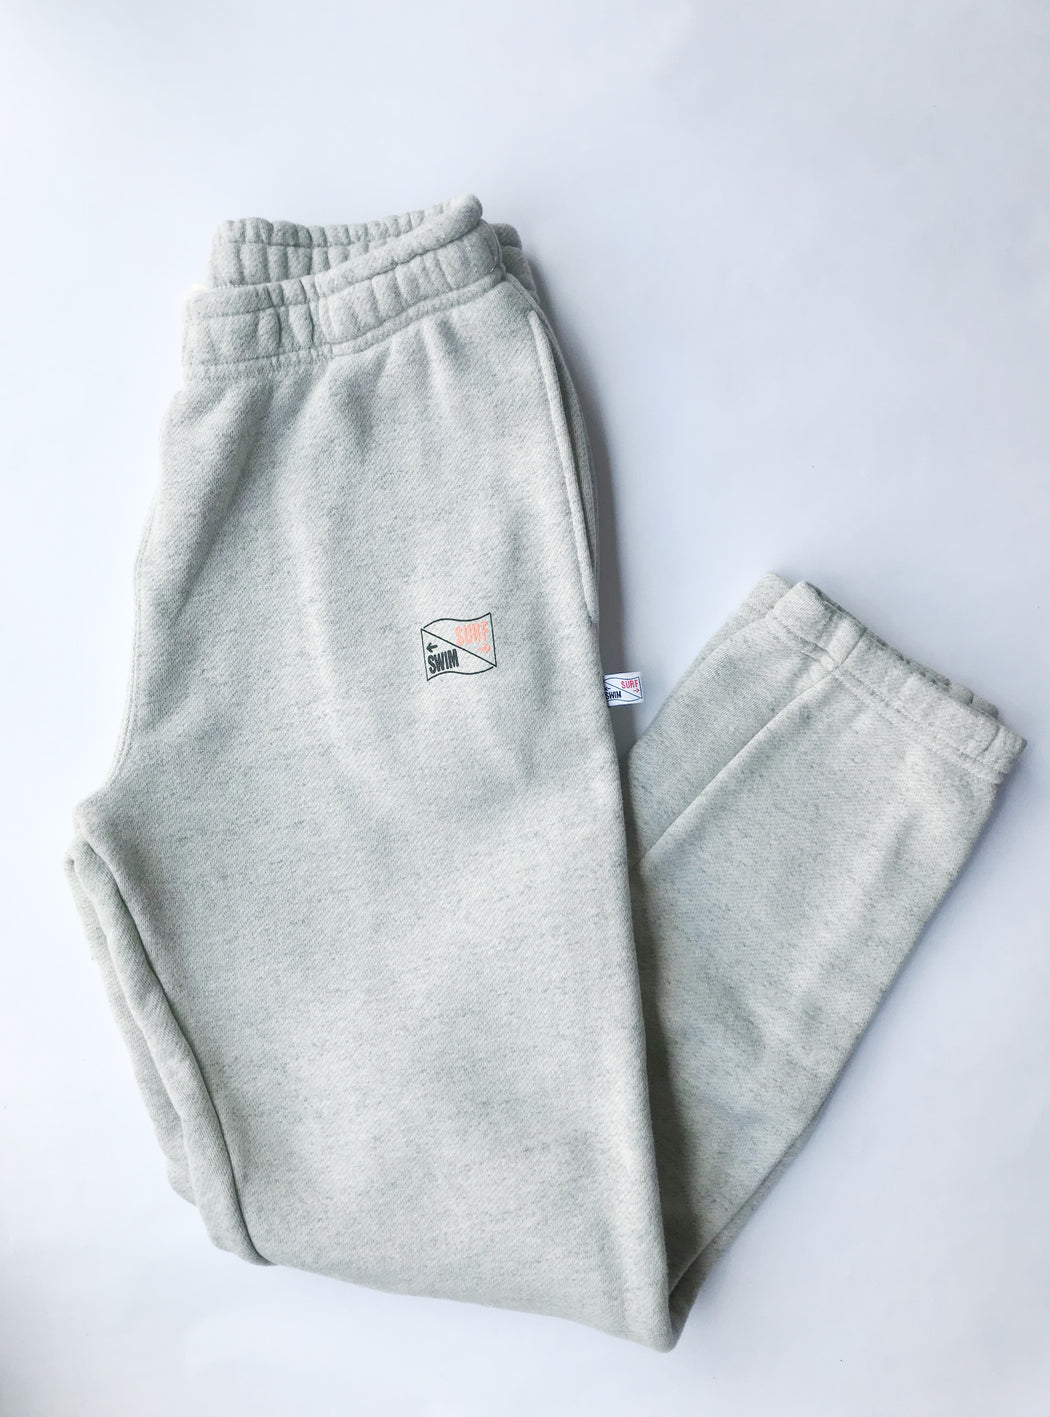 Men's SURF|SWIM Sweatpants (Marled Cloud)